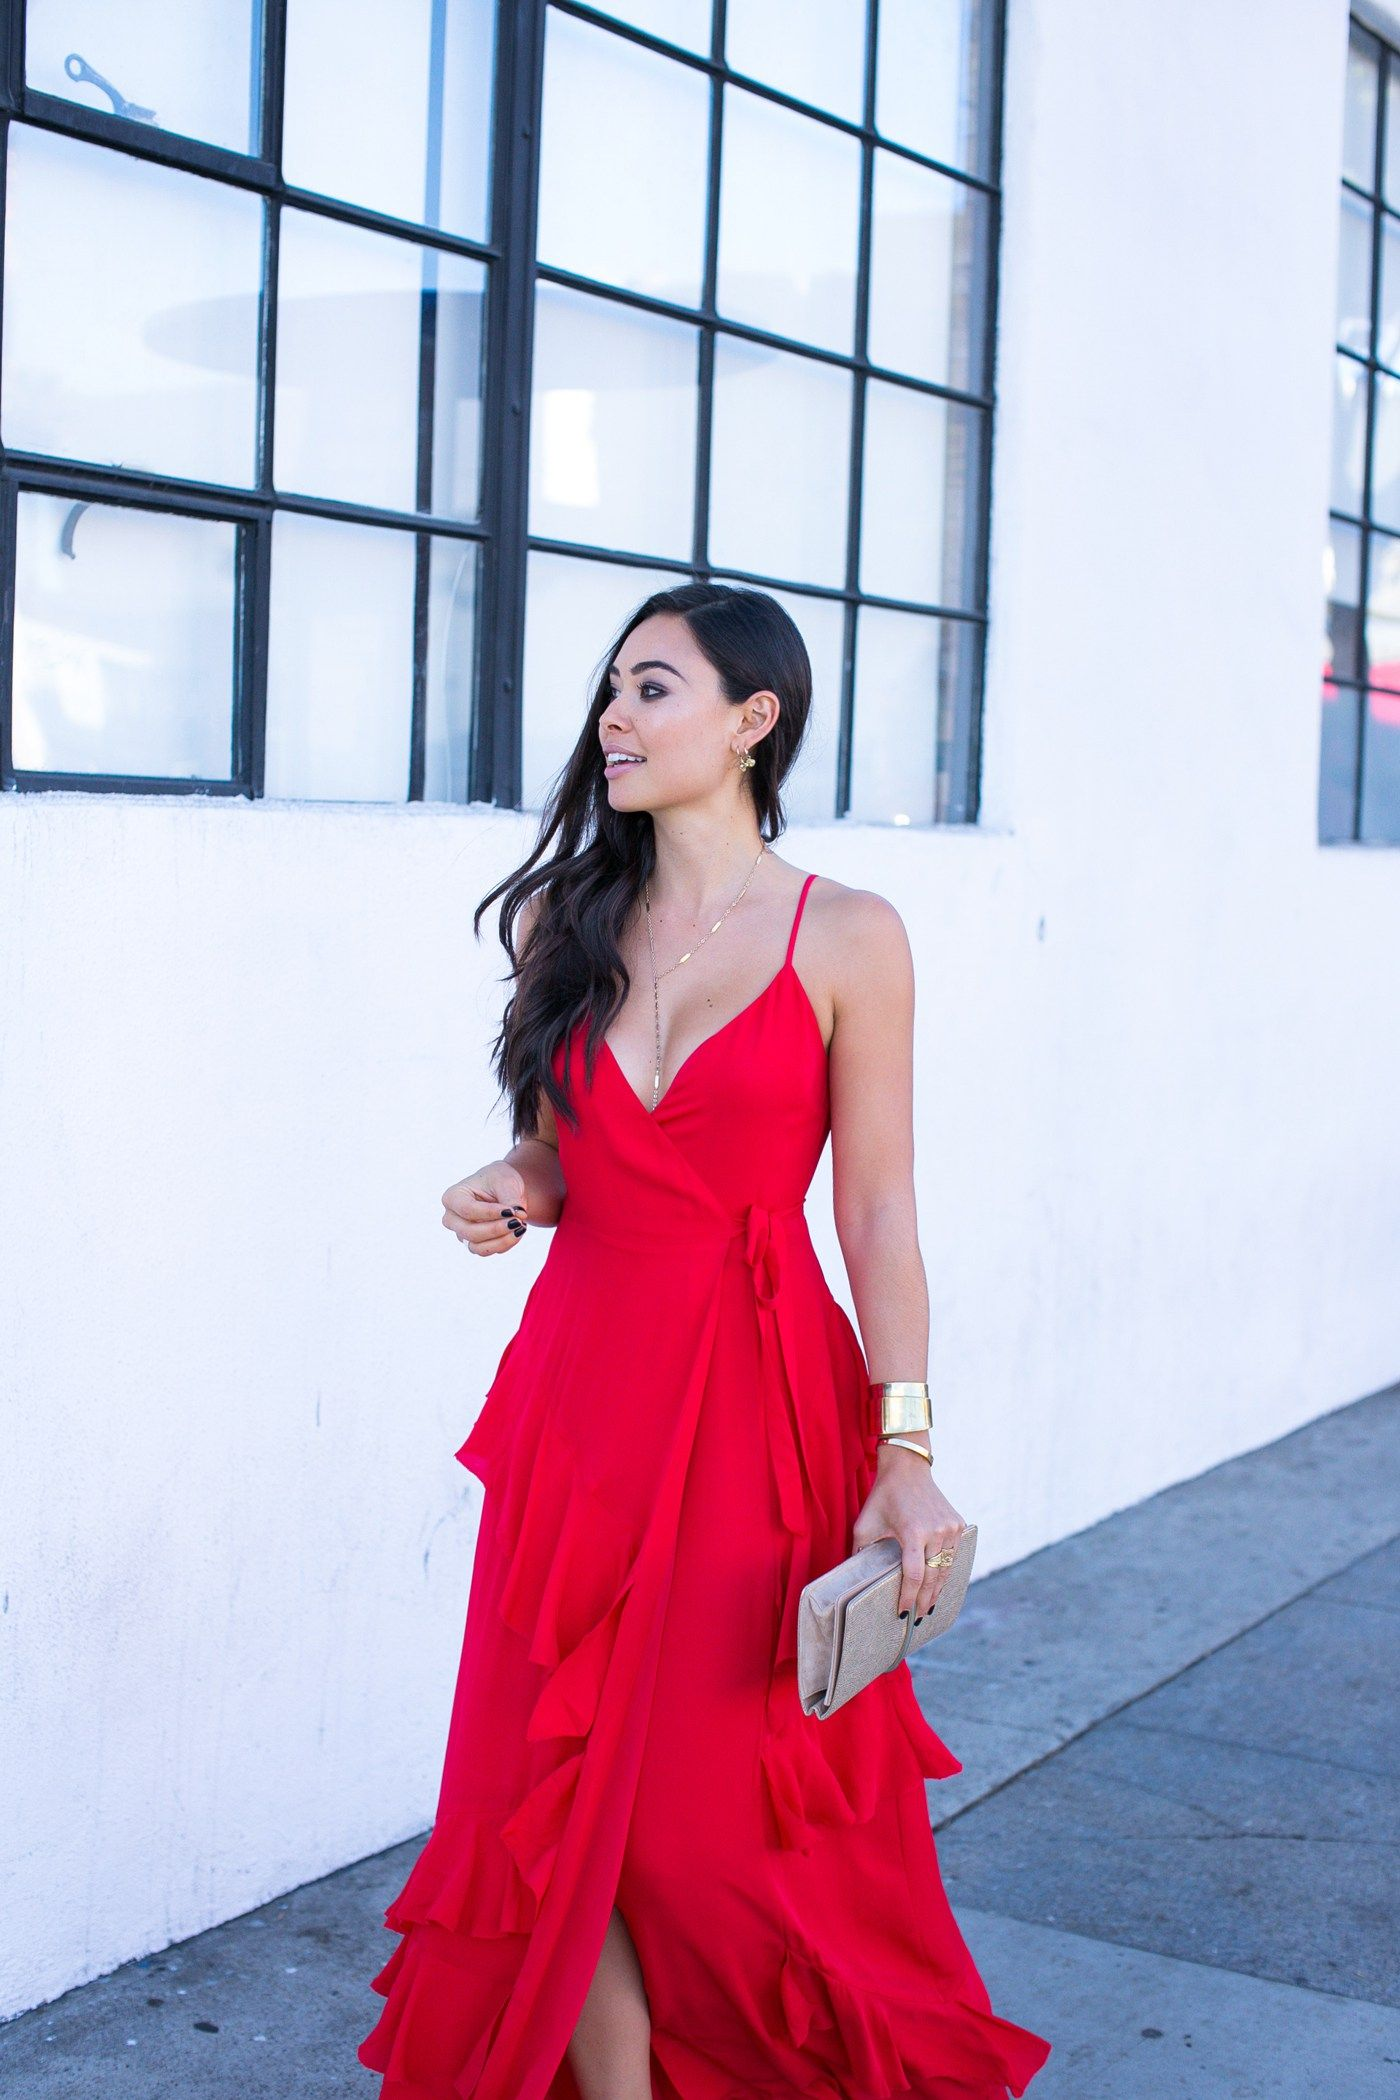 Stunning Red Dress for Wedding Guests | Rehearsal dinner ...